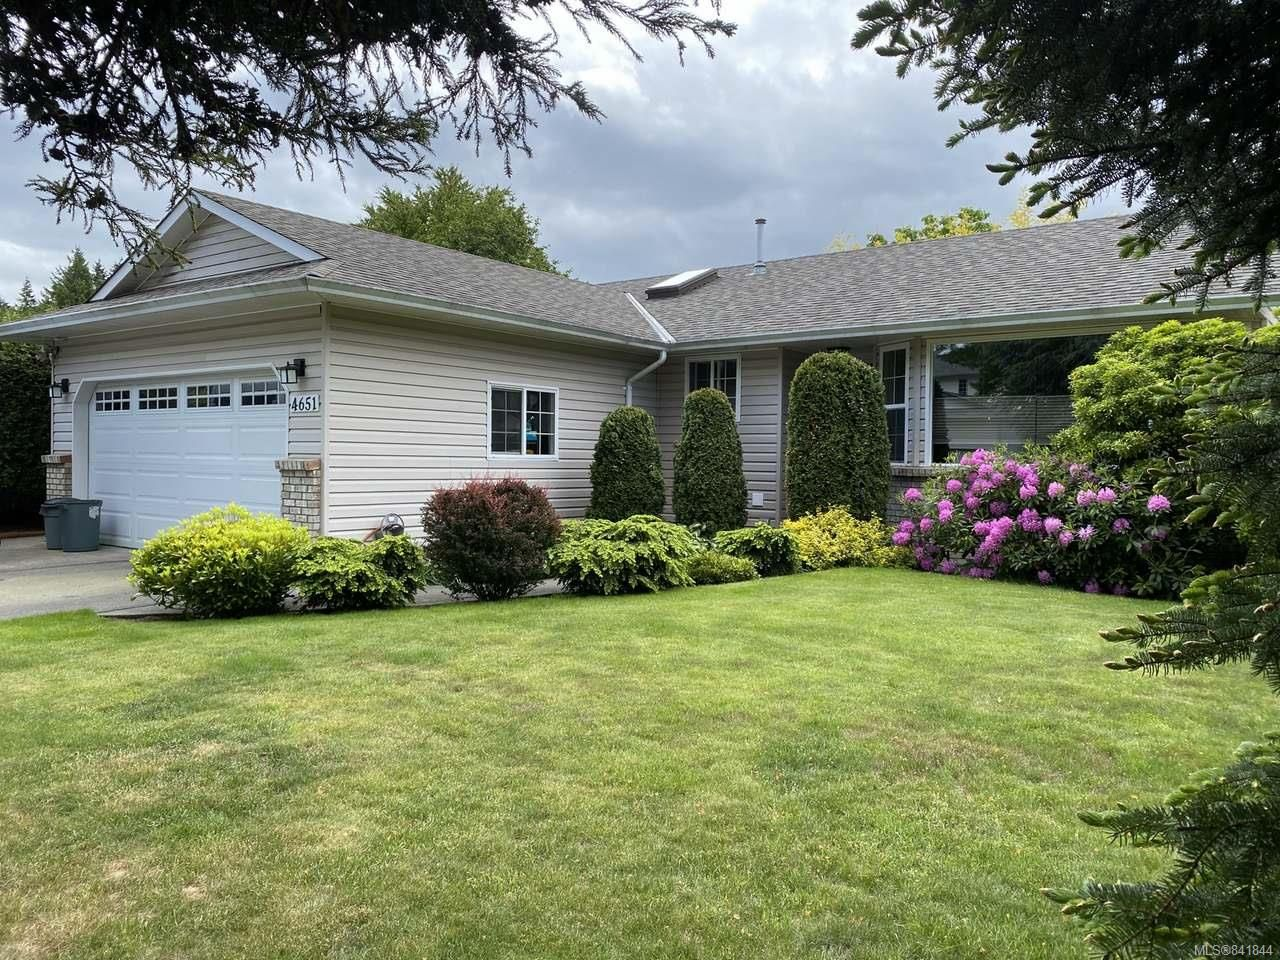 Main Photo: 4651 Muir Rd in COURTENAY: CV Courtenay East House for sale (Comox Valley)  : MLS®# 841844